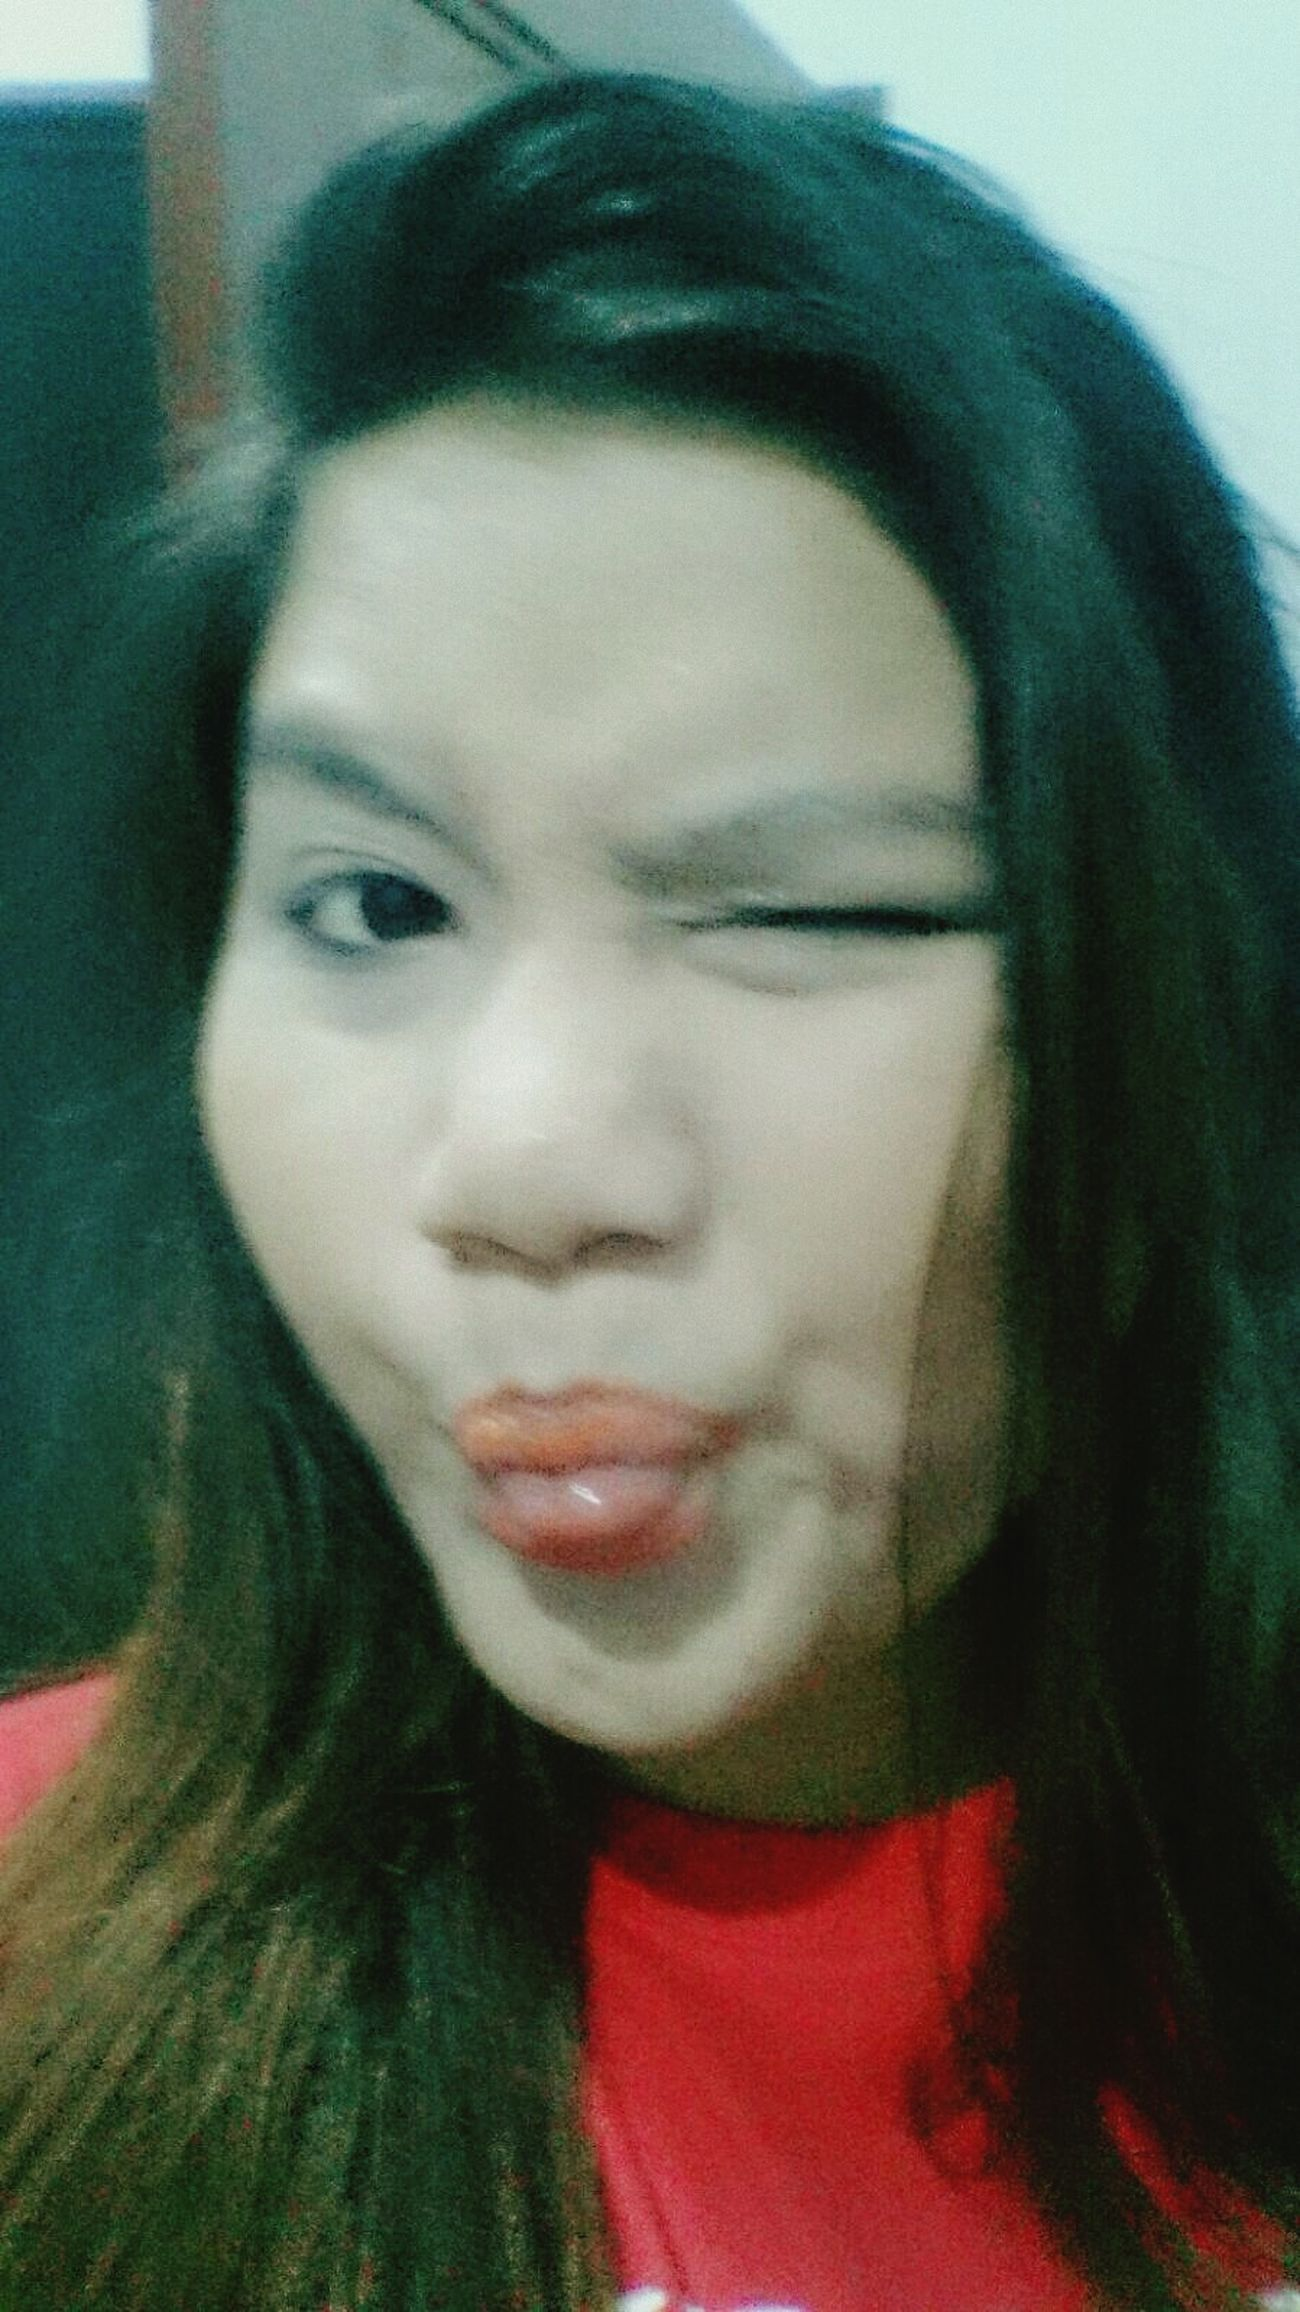 Natural Hair Haironfleek Self Potrait Selfportrait Weirdography Long Hair Weirdfaces Weirdselfie